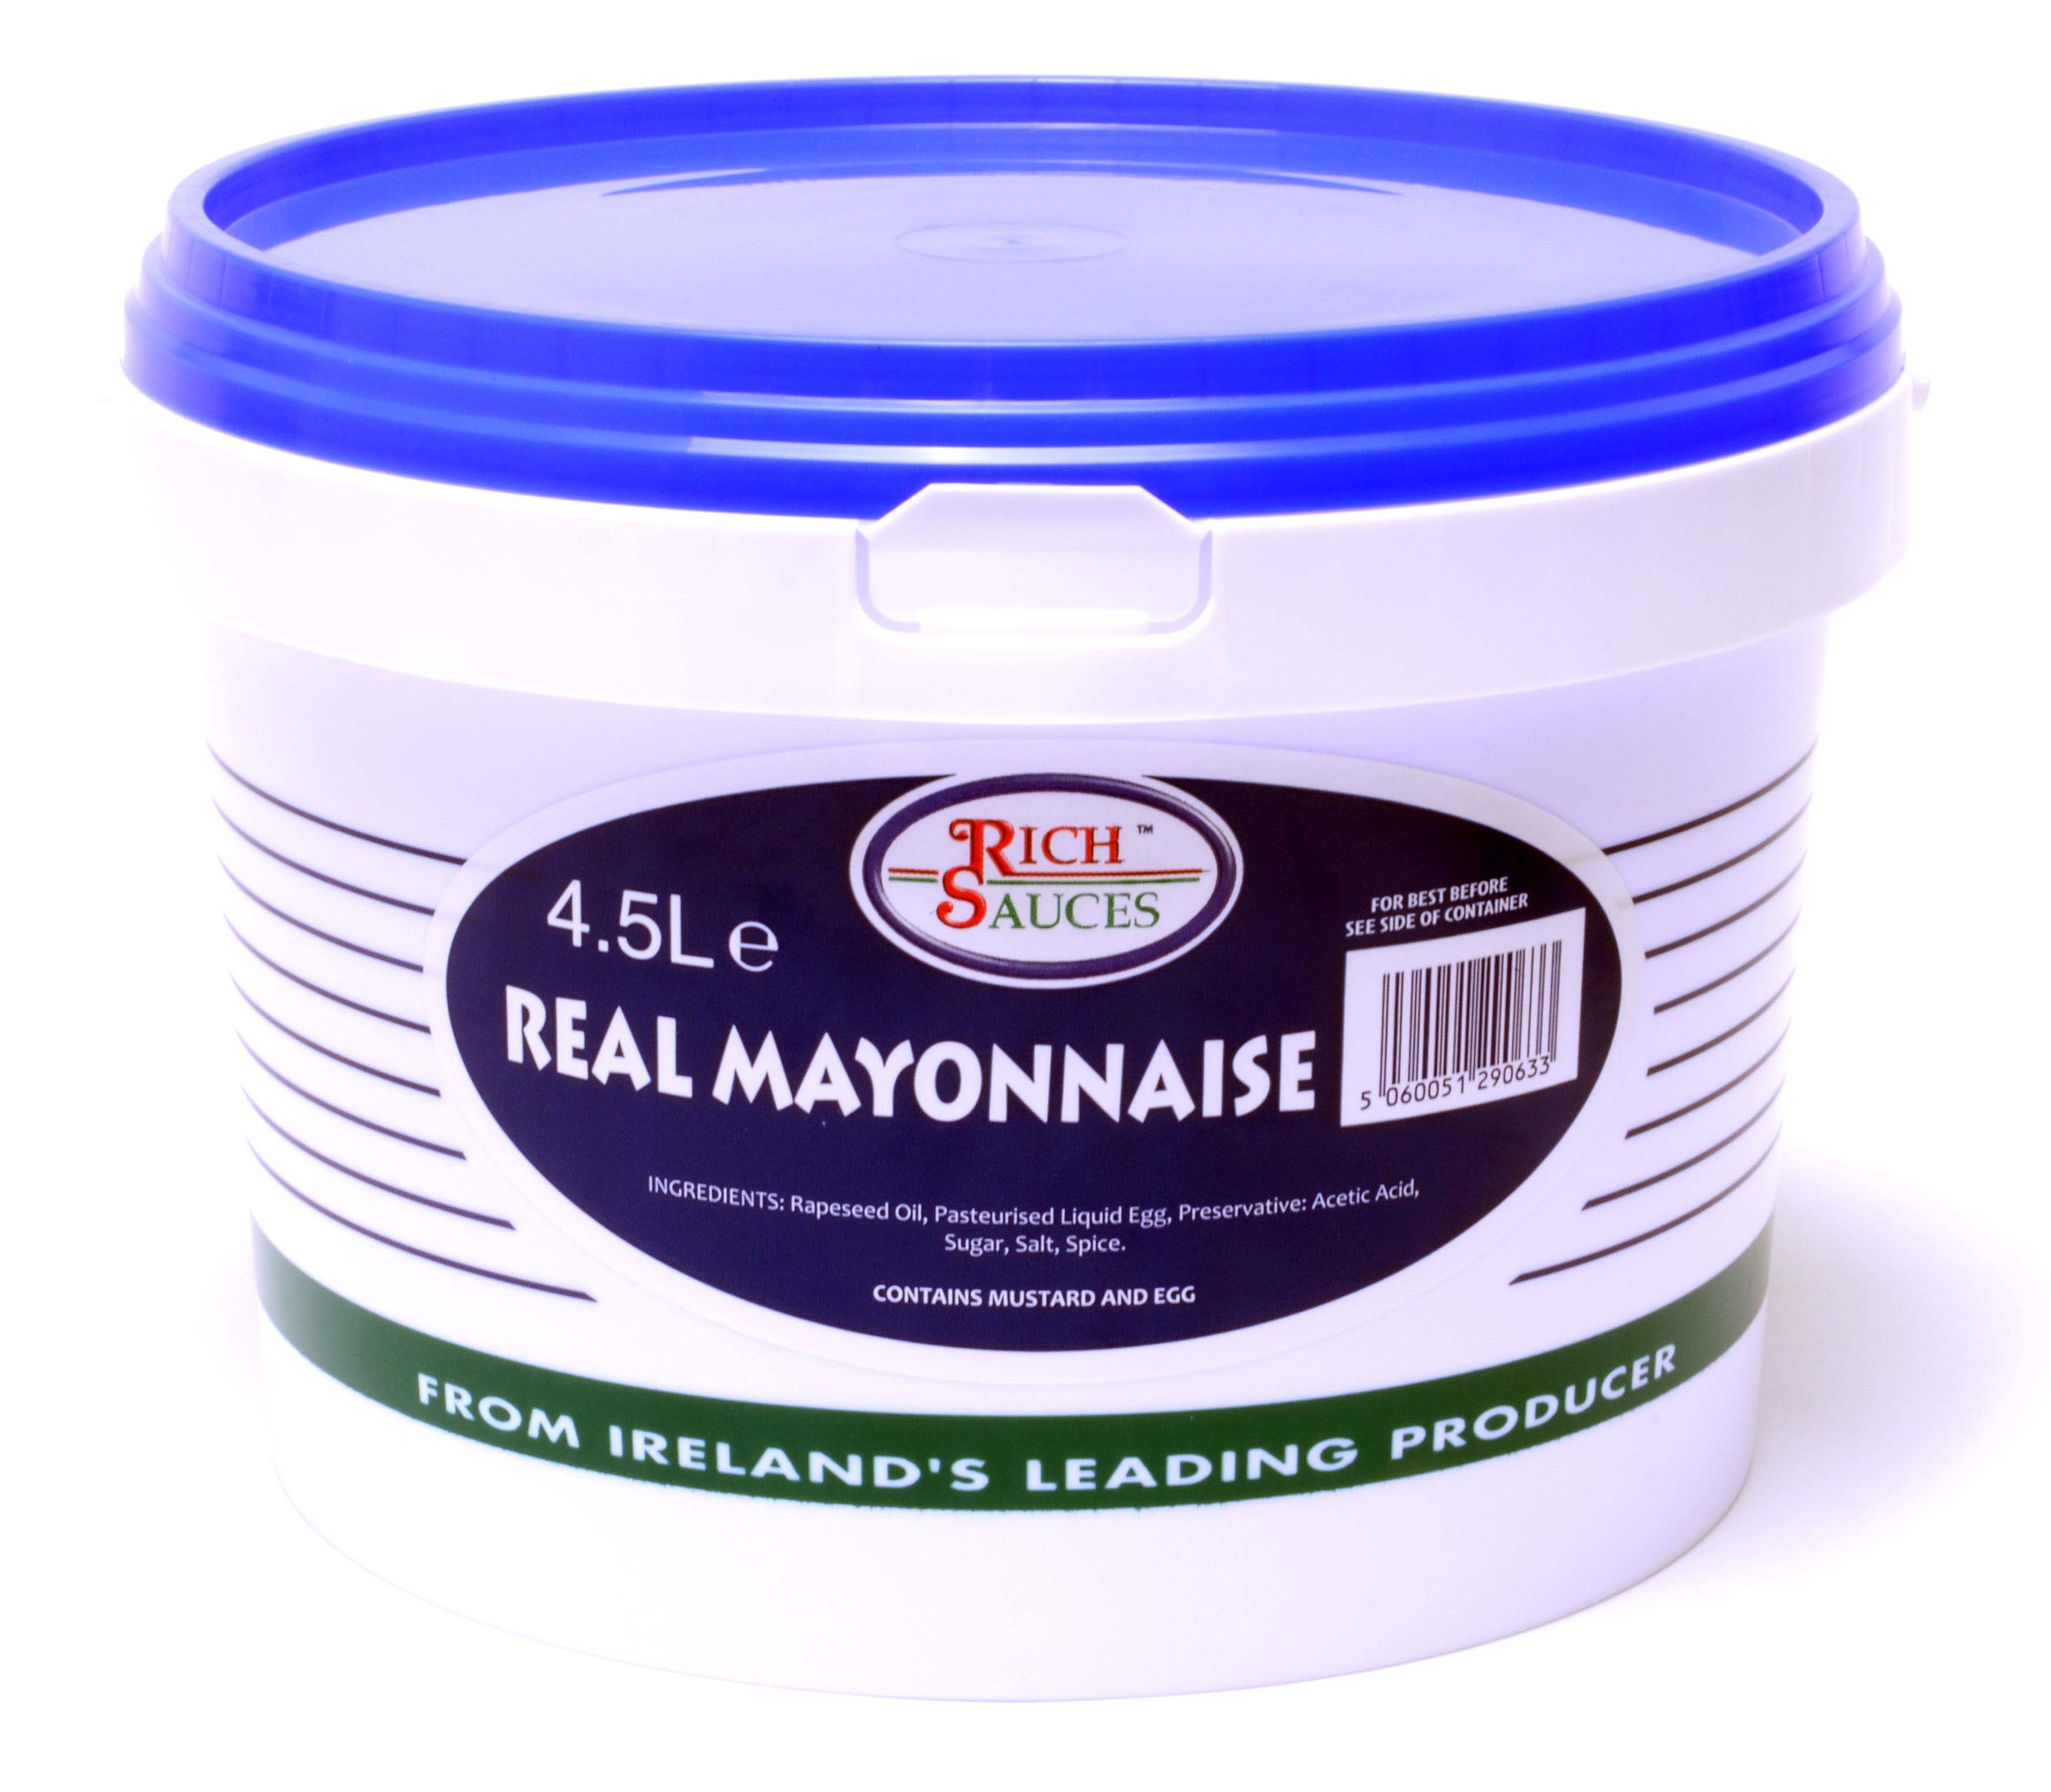 Rich Sauces Real Mayonnaise